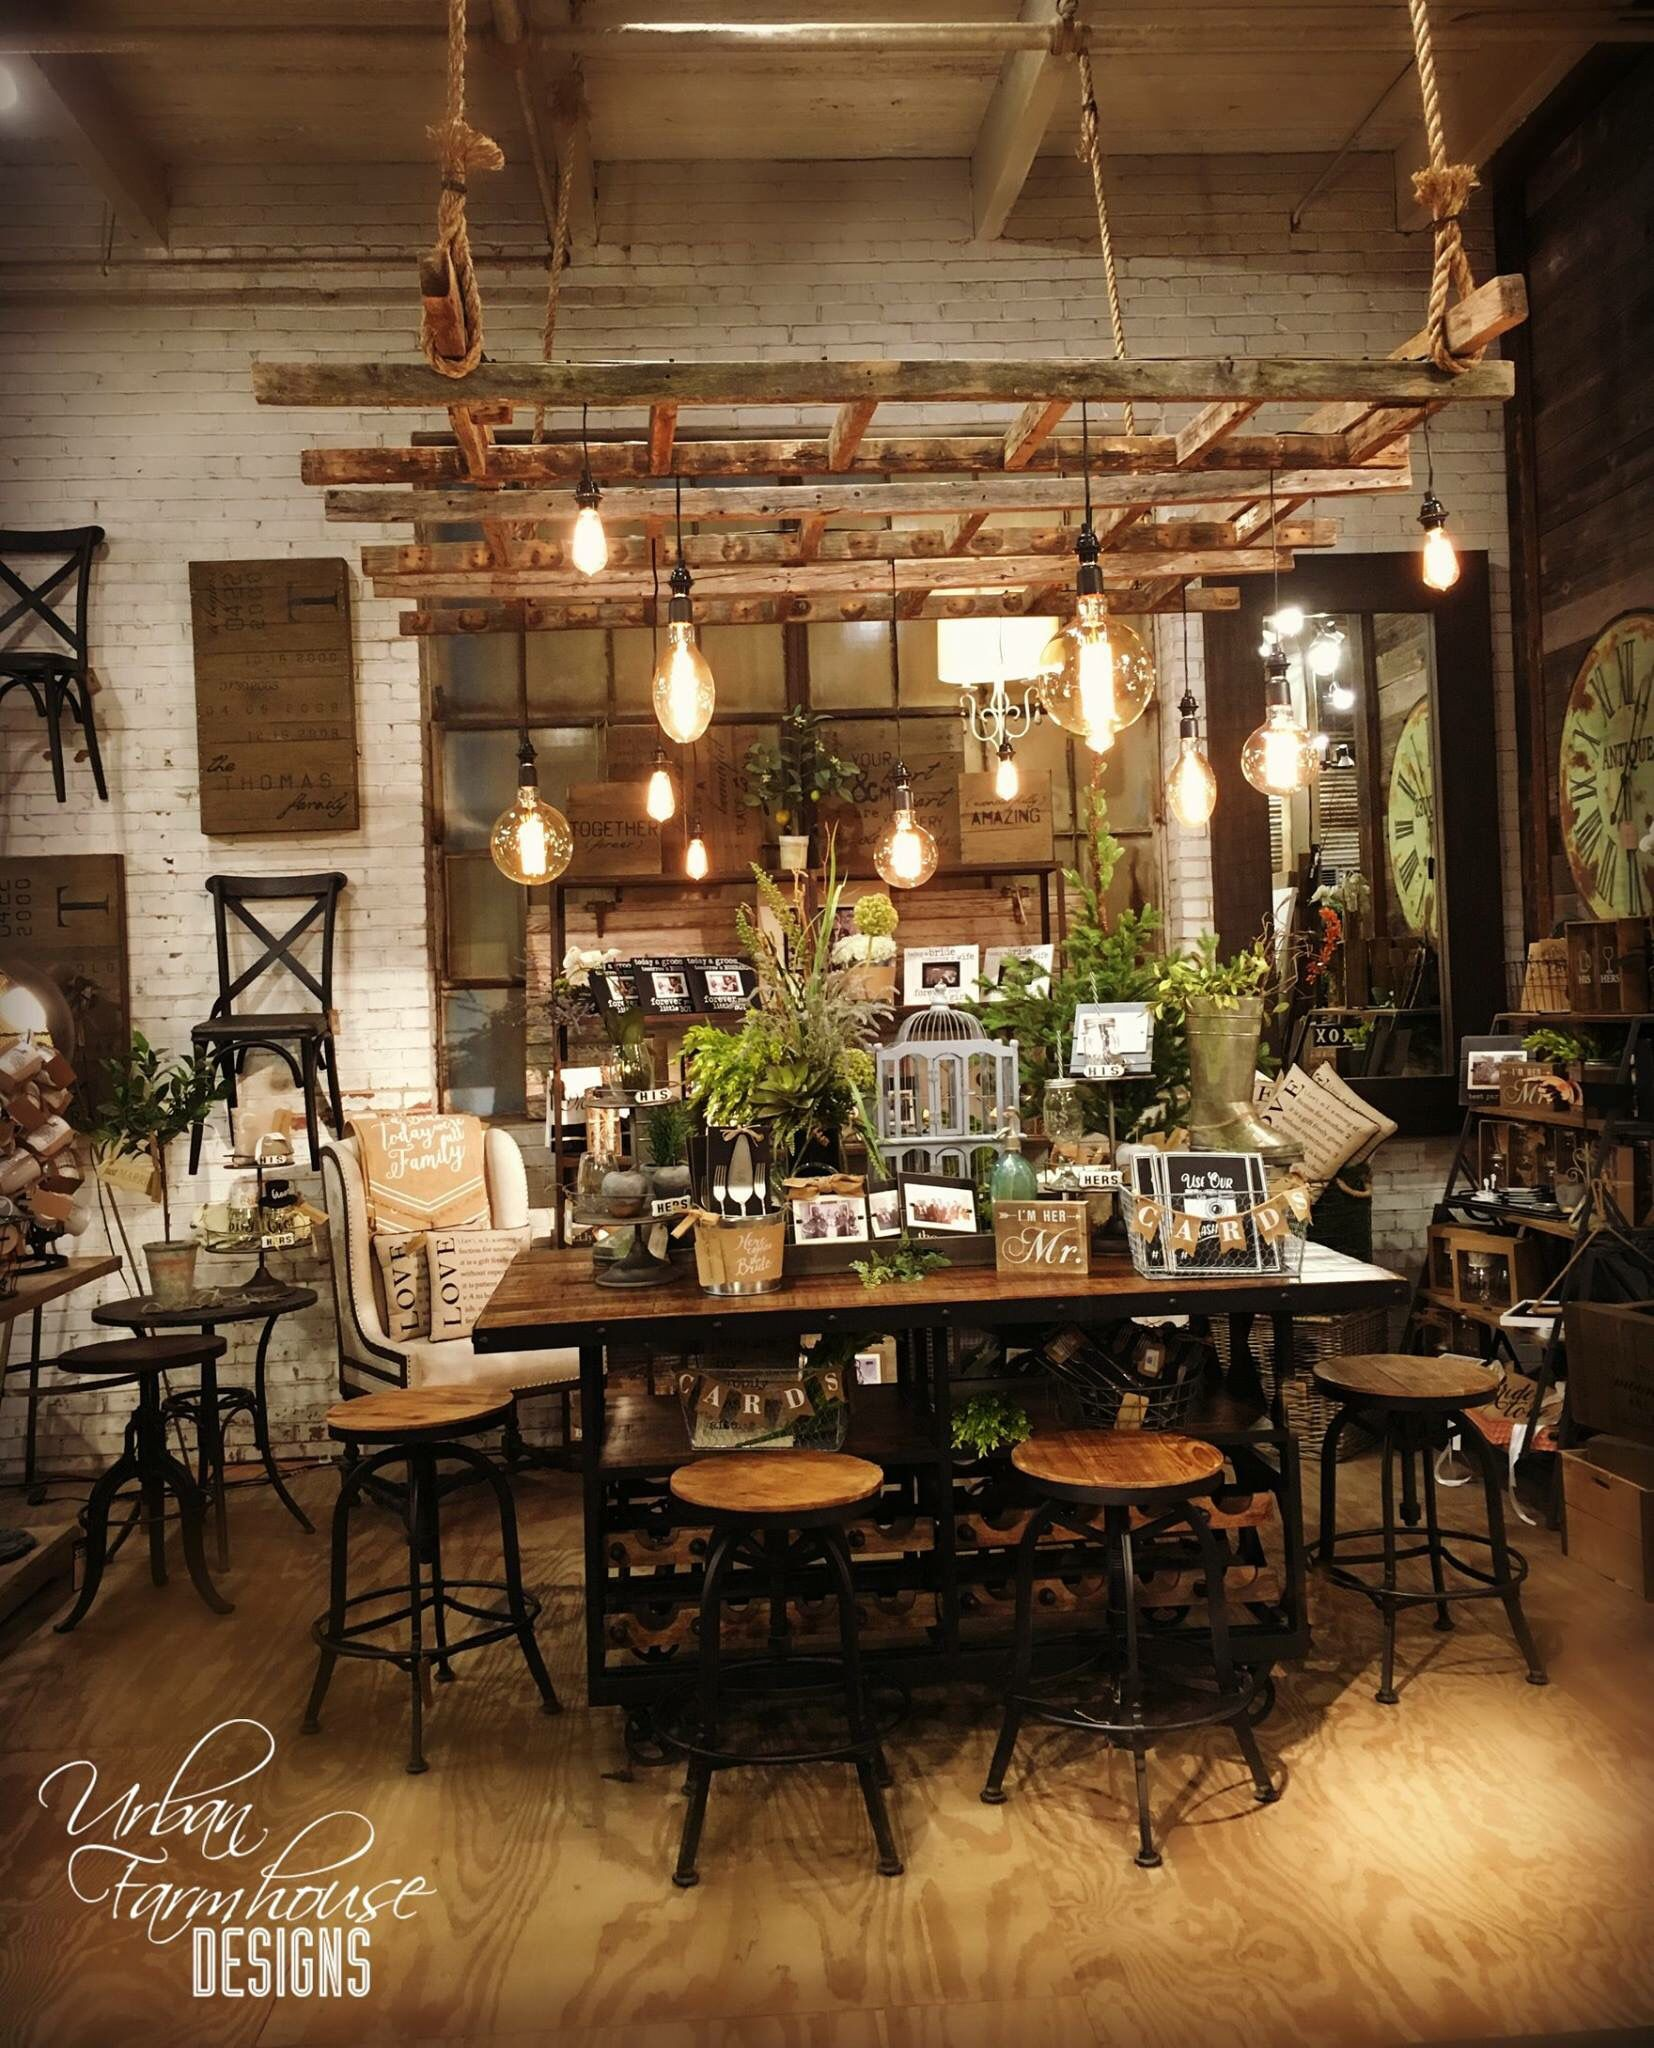 Rustic Dining Room Lighting: Love This Ladder Light Fixture Above The Table. In 2019